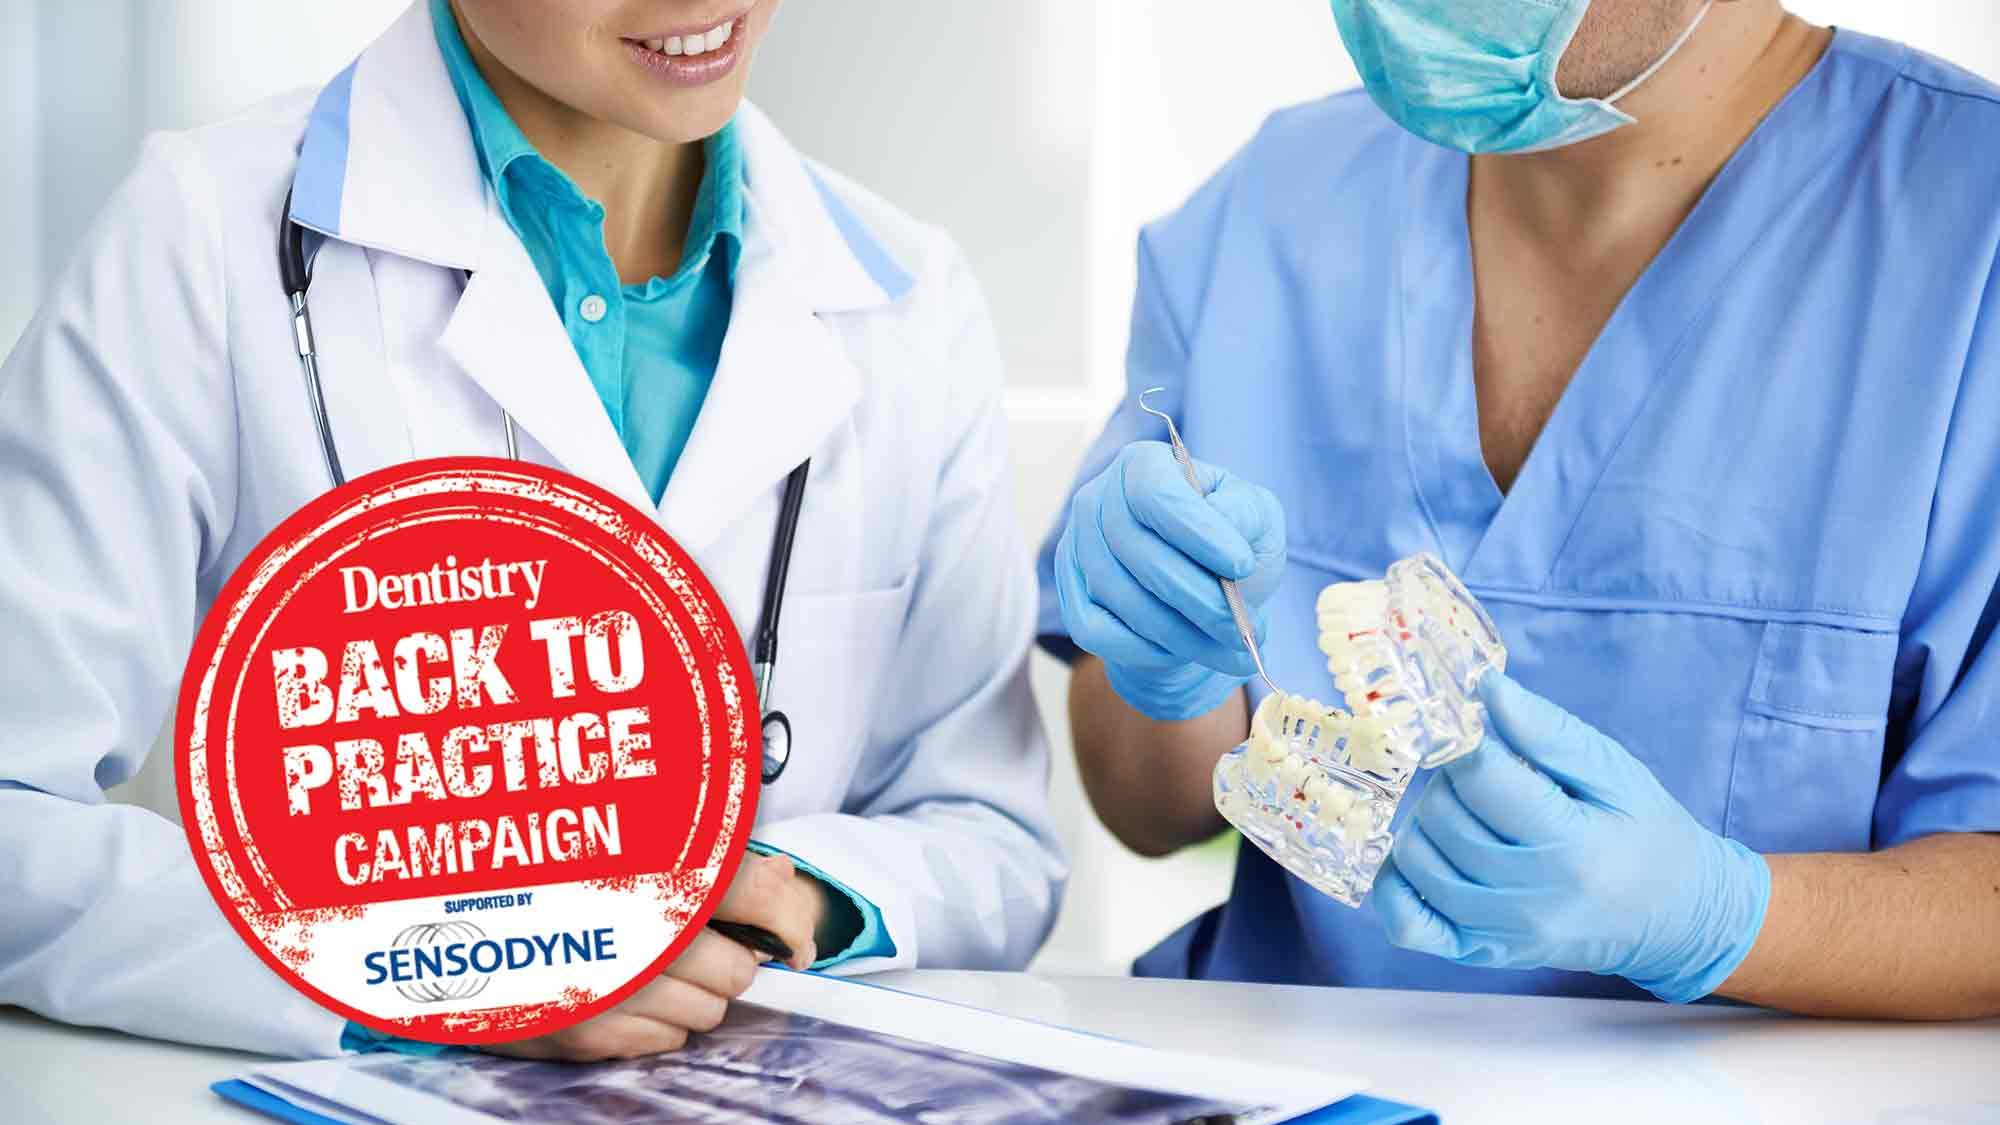 The dental industry has responded to the announcement that dental practices will reopen on Monday 9th June